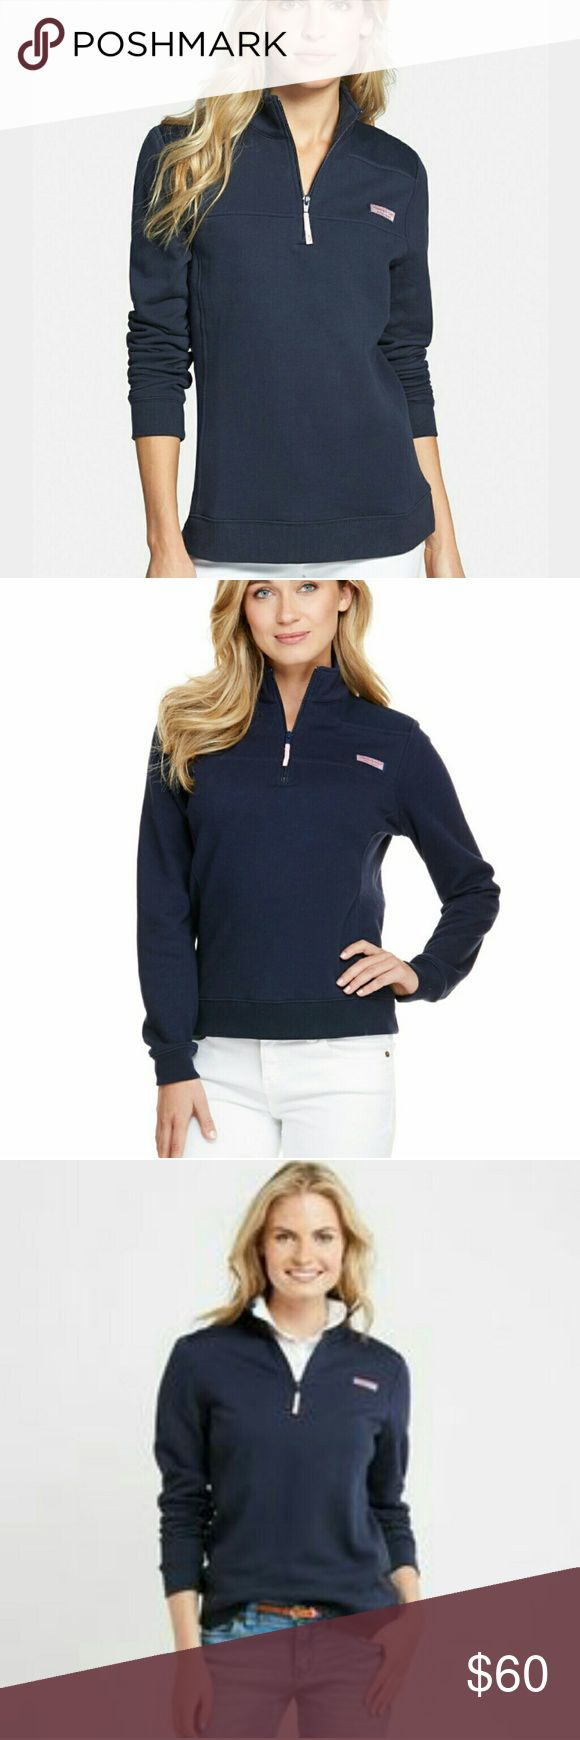 Vineyard vines pullover size xxsmall In good condition  Very cute?  Checkout my listings for more awesome stuff! Vineyard Vines Sweaters